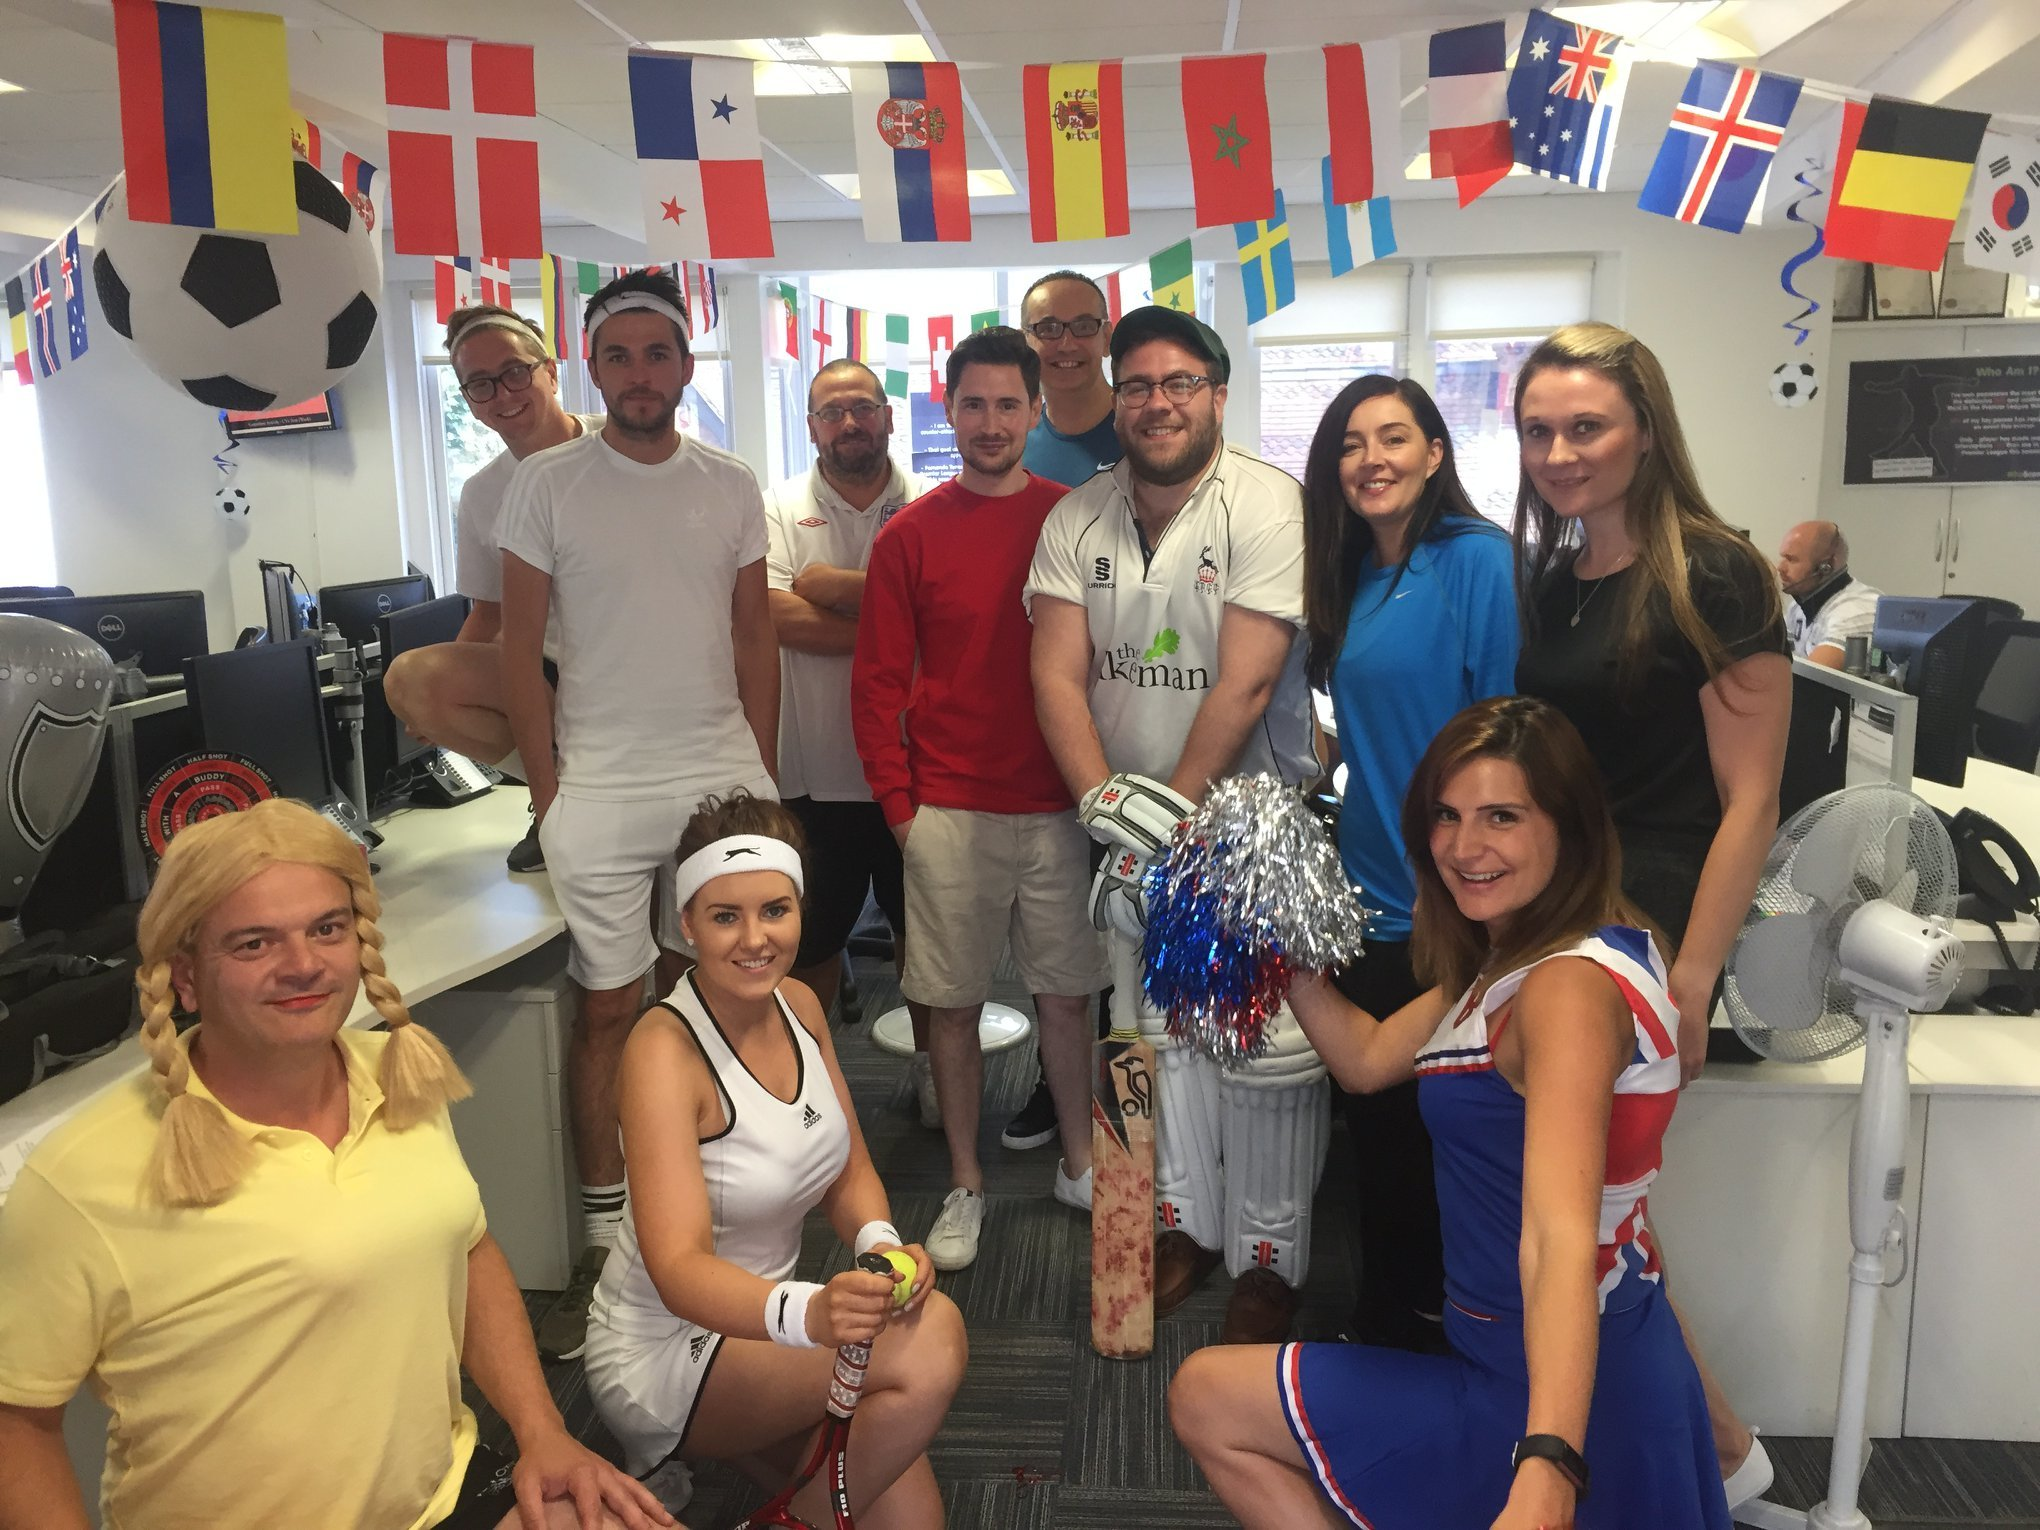 InterQuest Group colleagues dressed up in their office for the Olympics